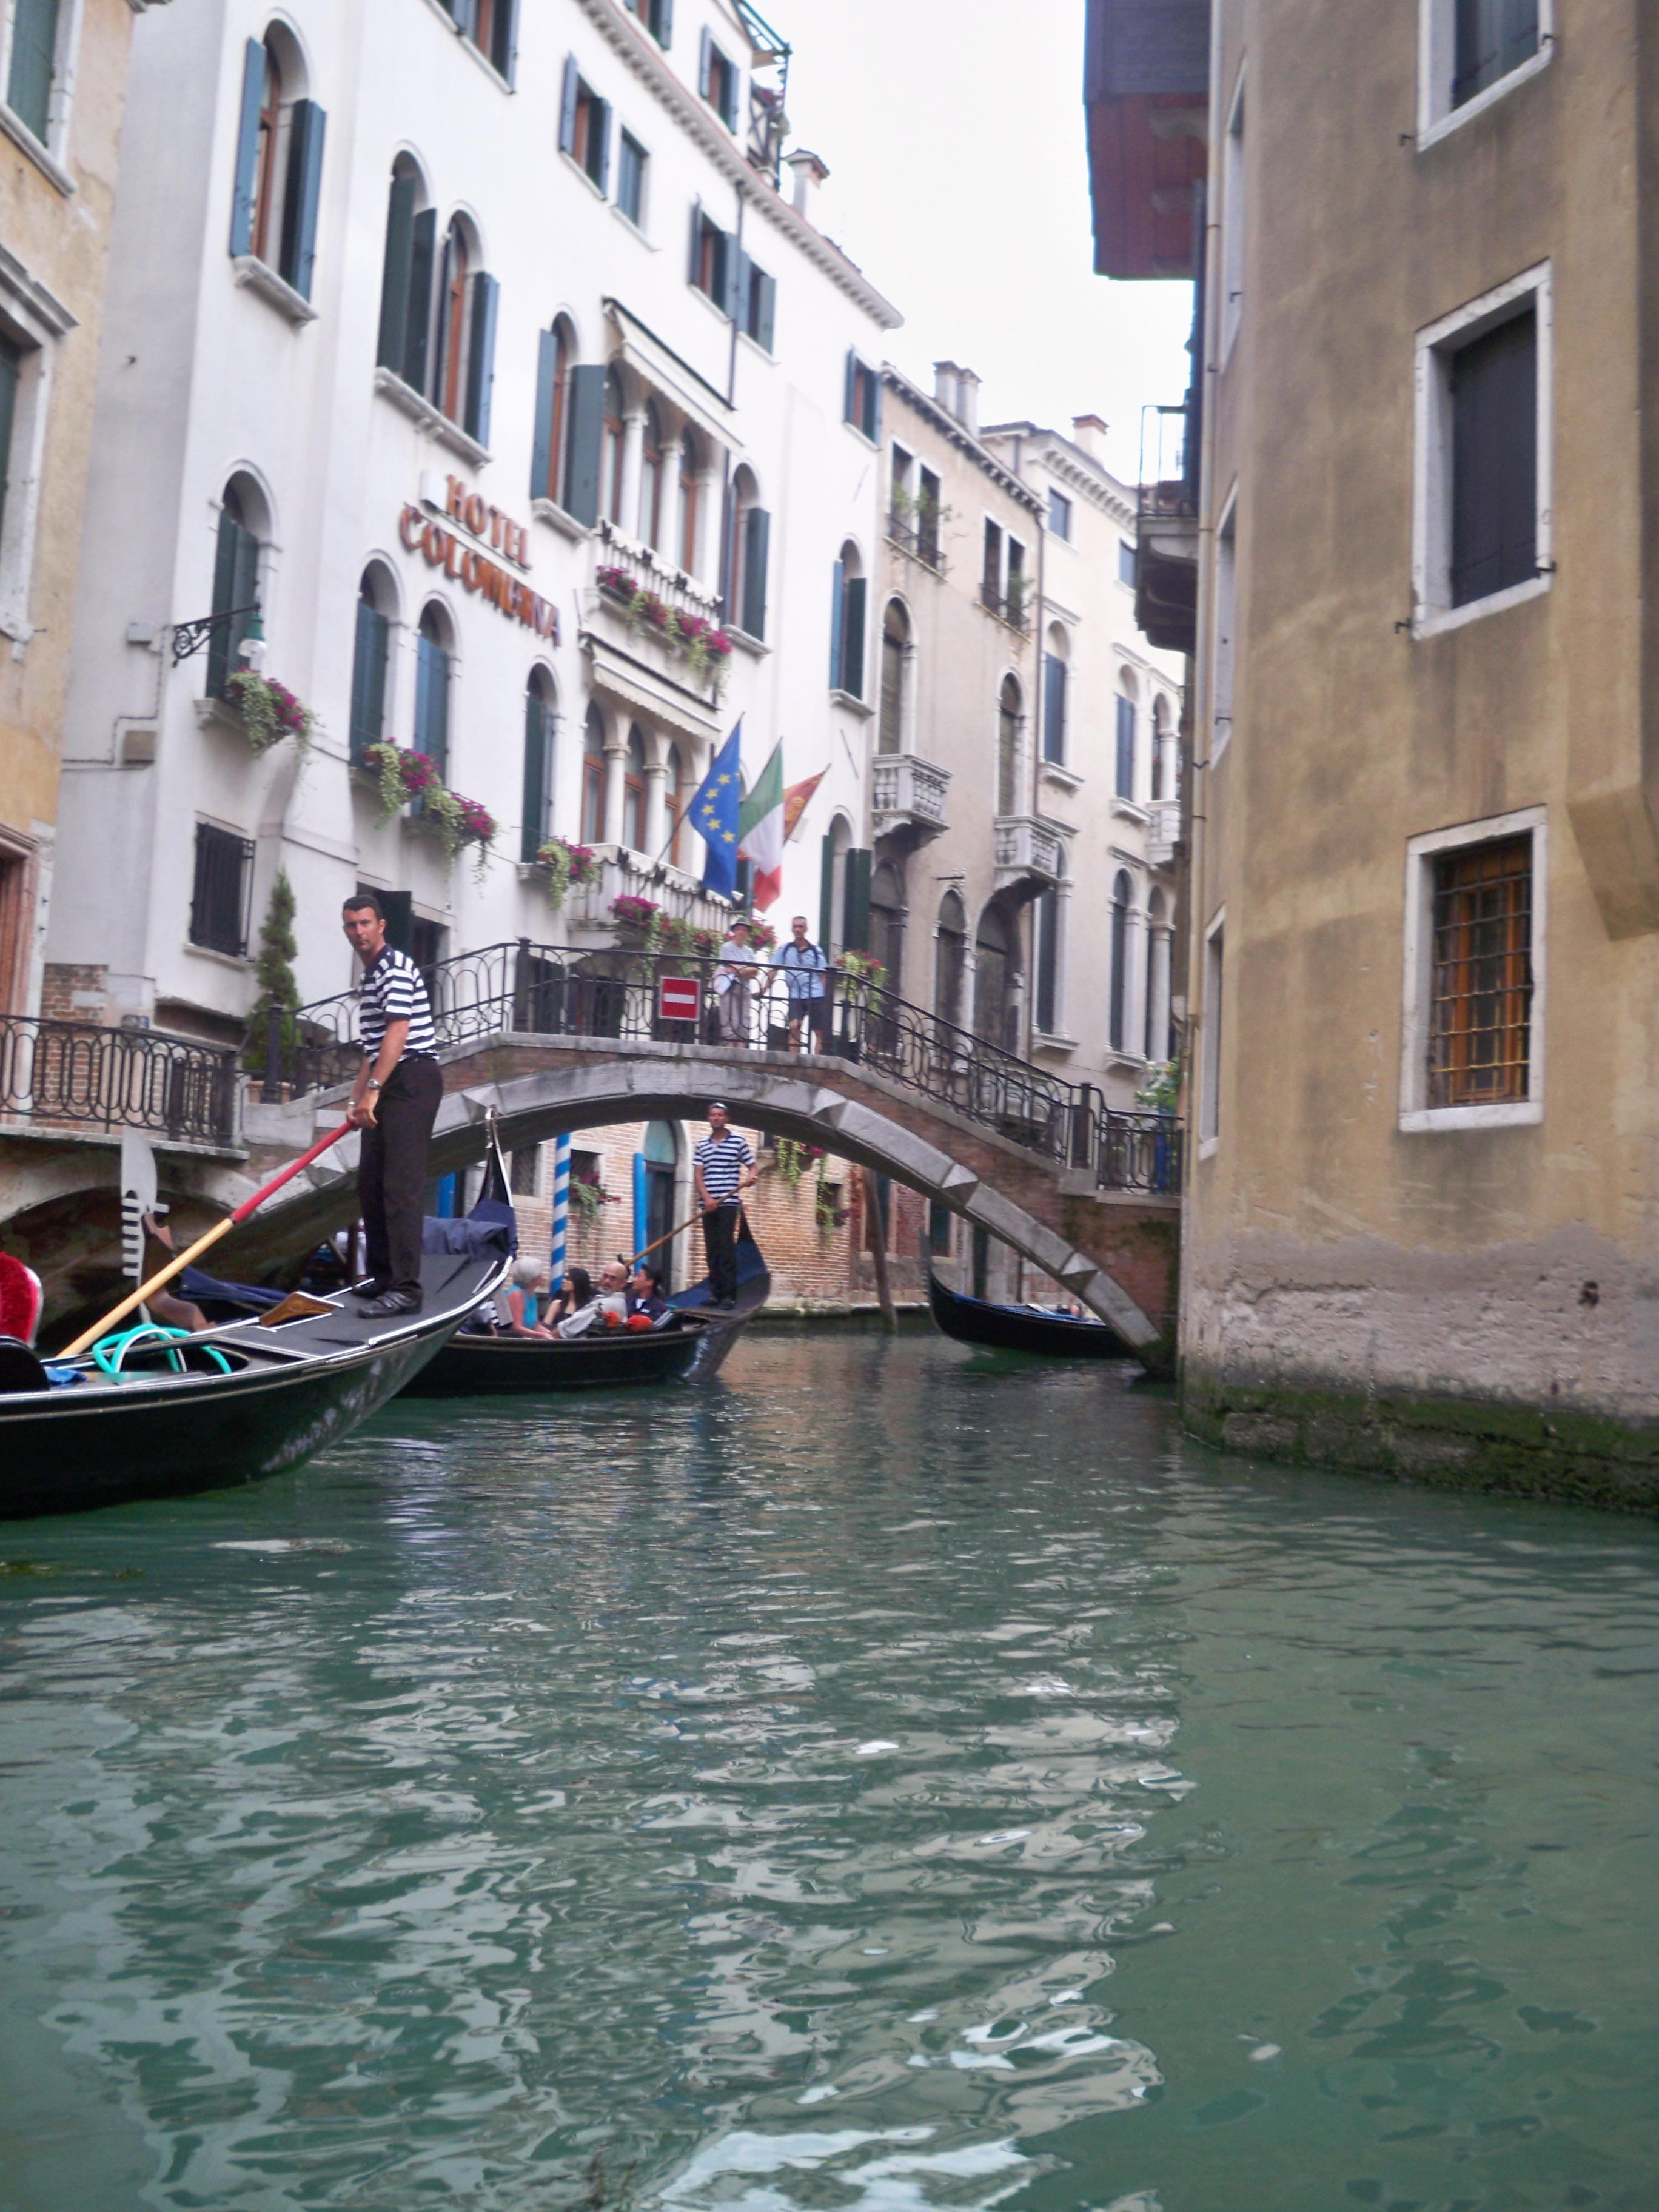 Our Italy Itinerary - Italy Vacation Itinerary - HomeAway - Travel Tips - Communikait by Kait Hanson